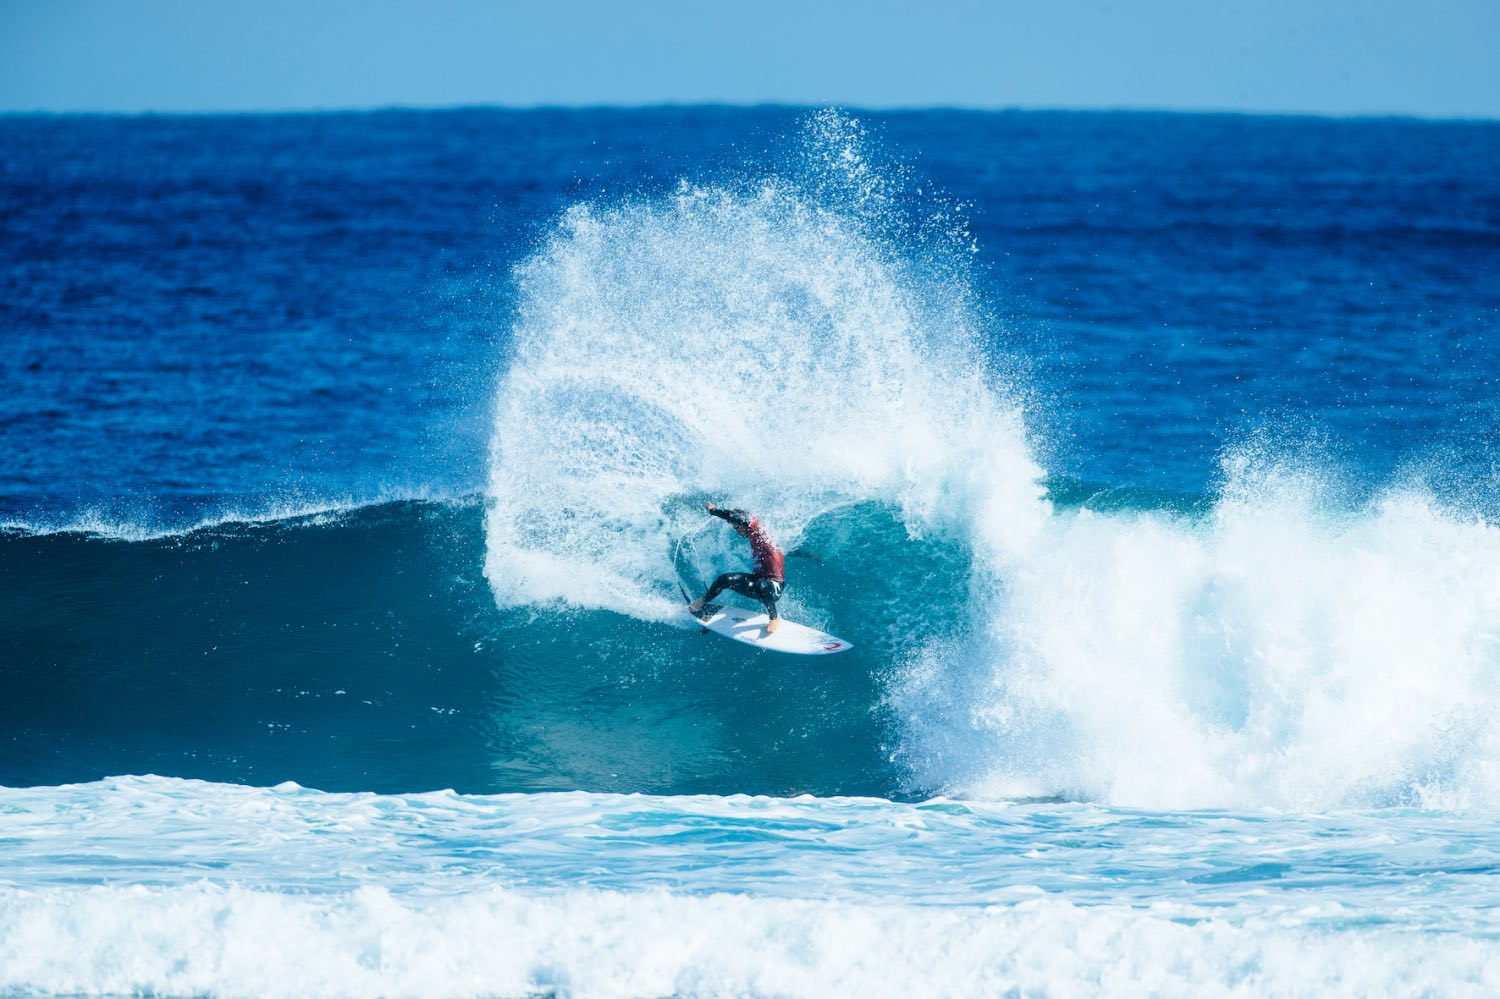 Matthew McGillivray finishes equal 3rd at the Boost Mobile Margaret River Pro surfing contest